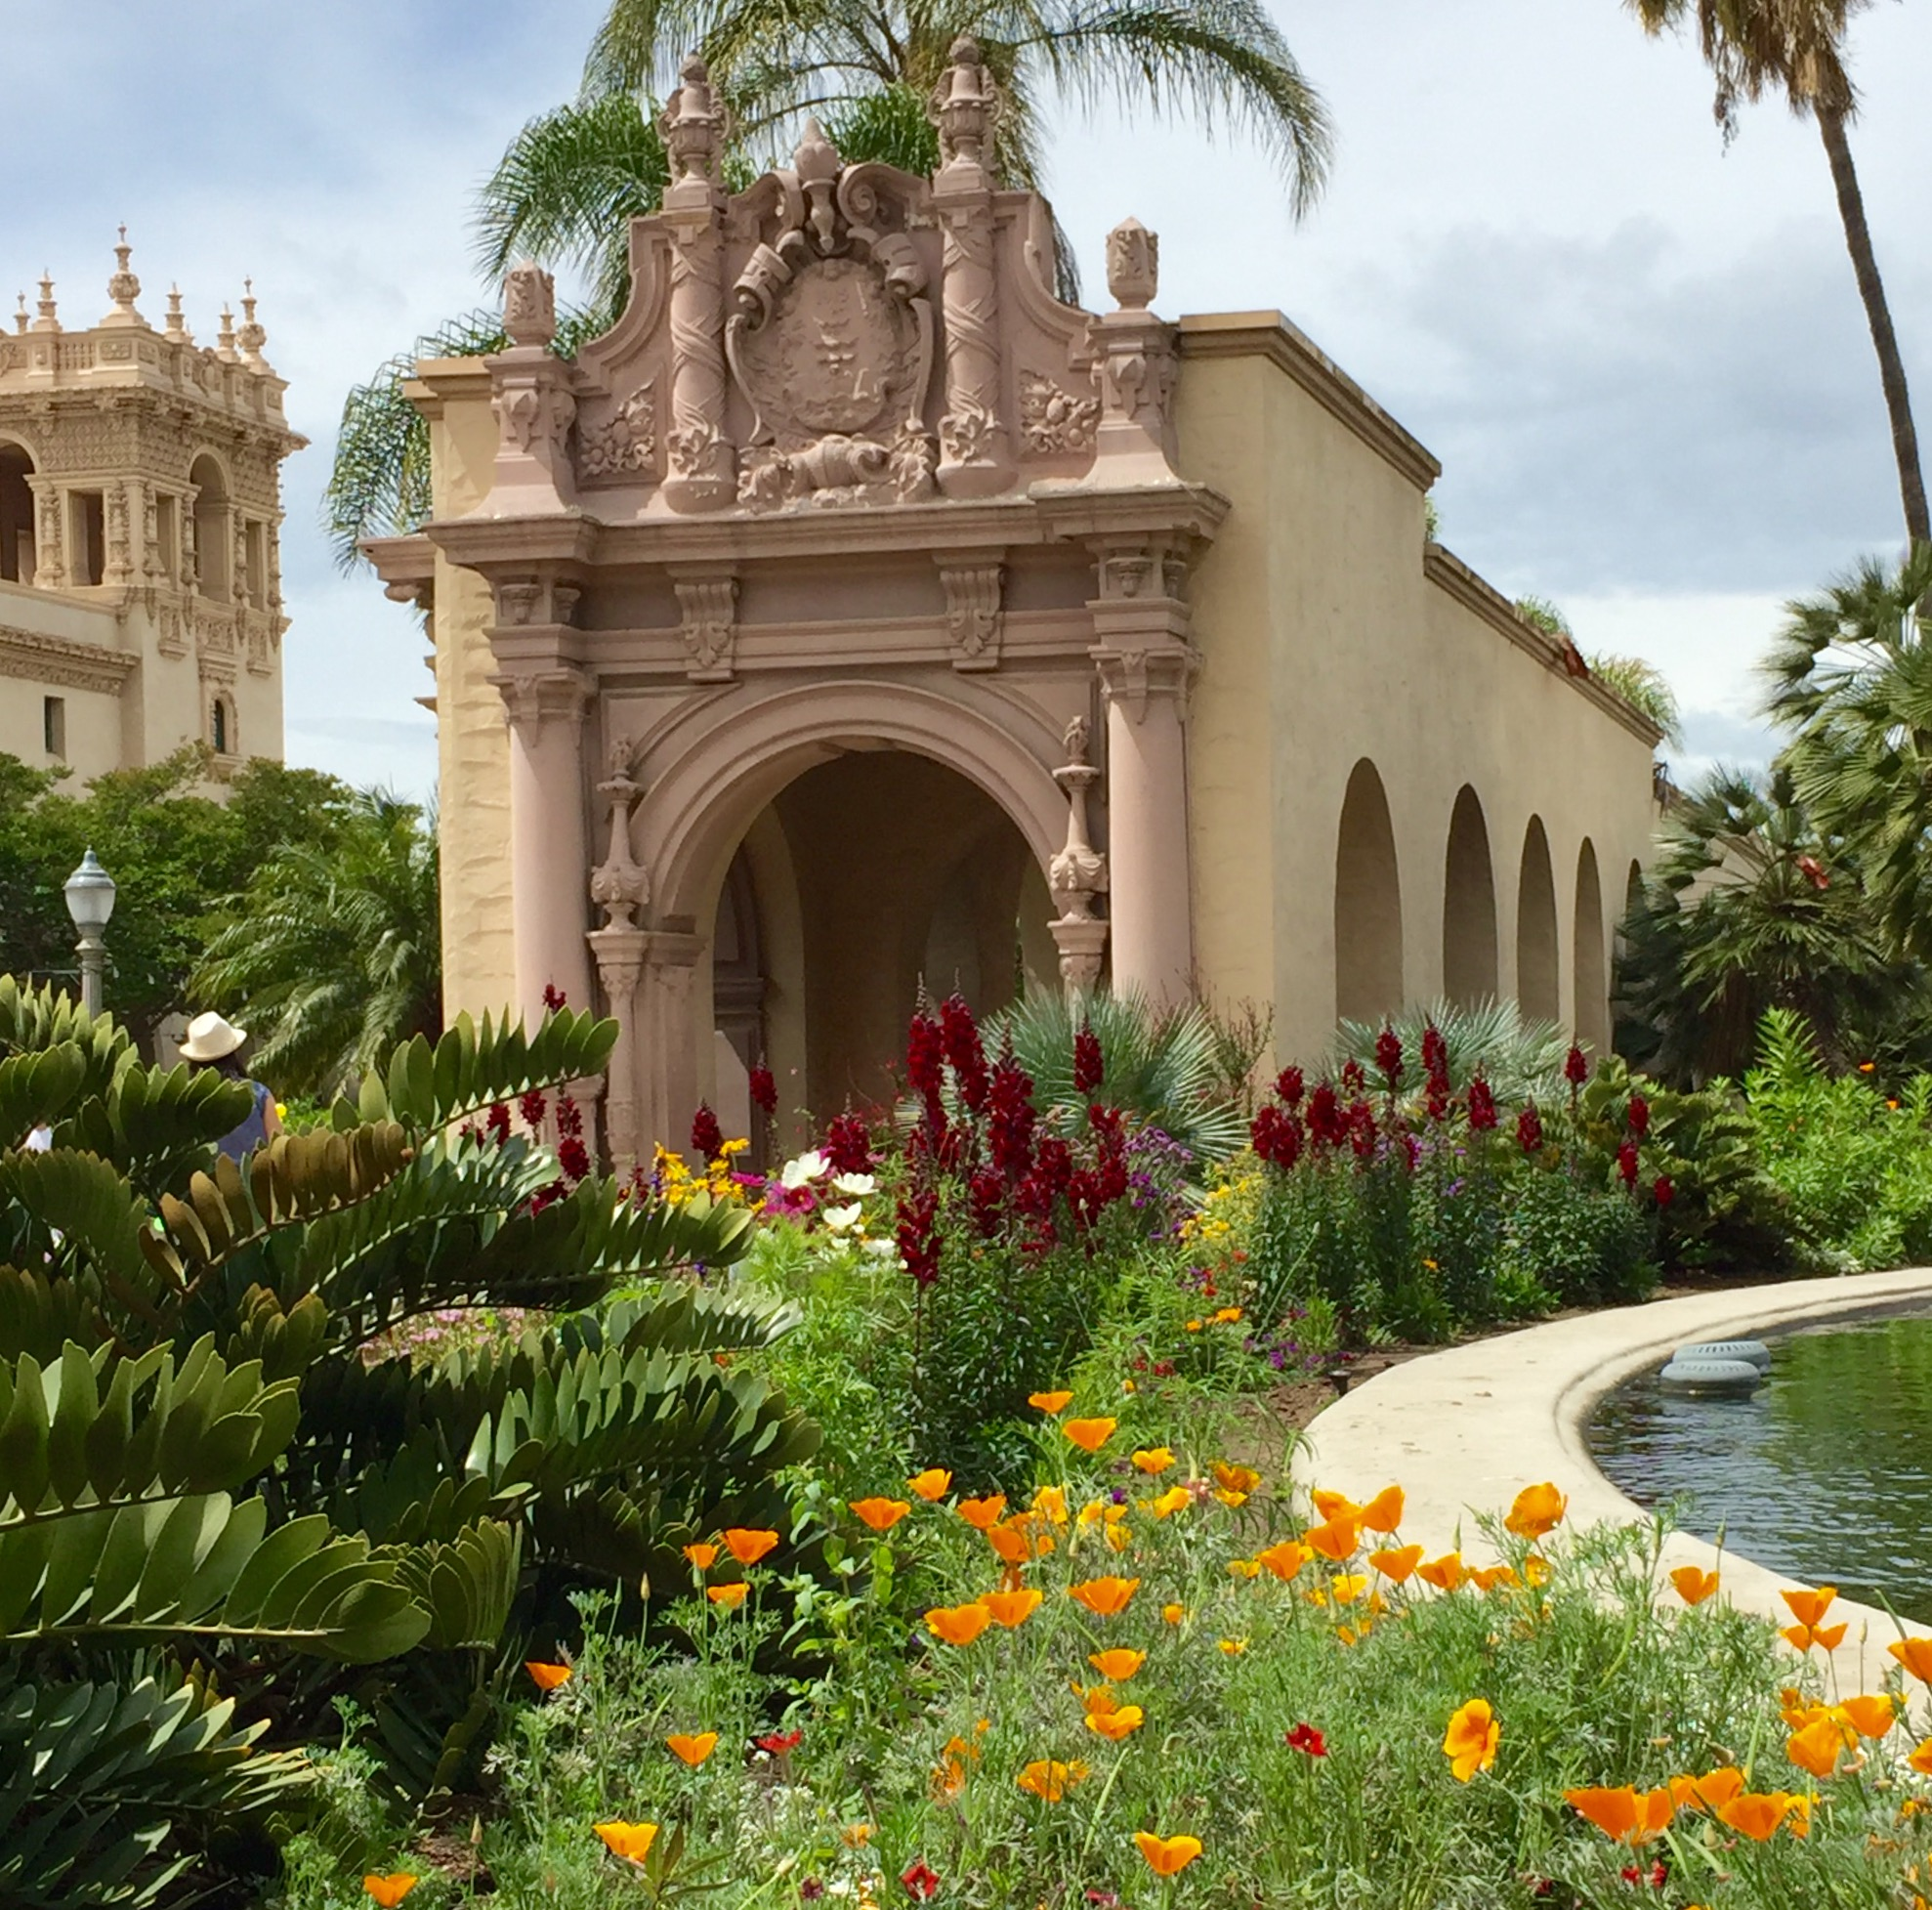 Balboa Park Explorer Pass - Should You Buy One?